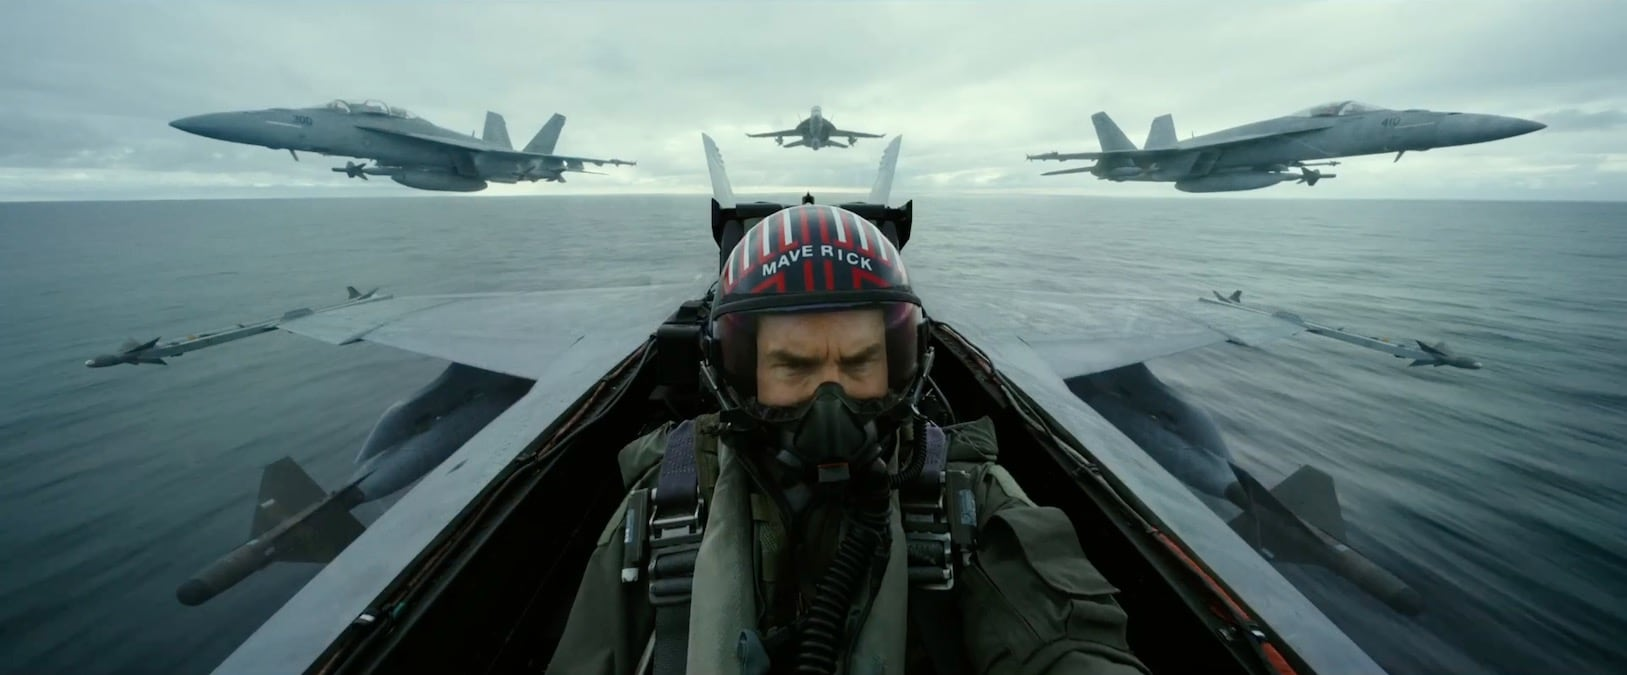 Top Gun: Maverick Trailer Wonders Why Tom Cruise's Fighter Pilot Is Stuck in Life — San Diego Comic-Con 2019